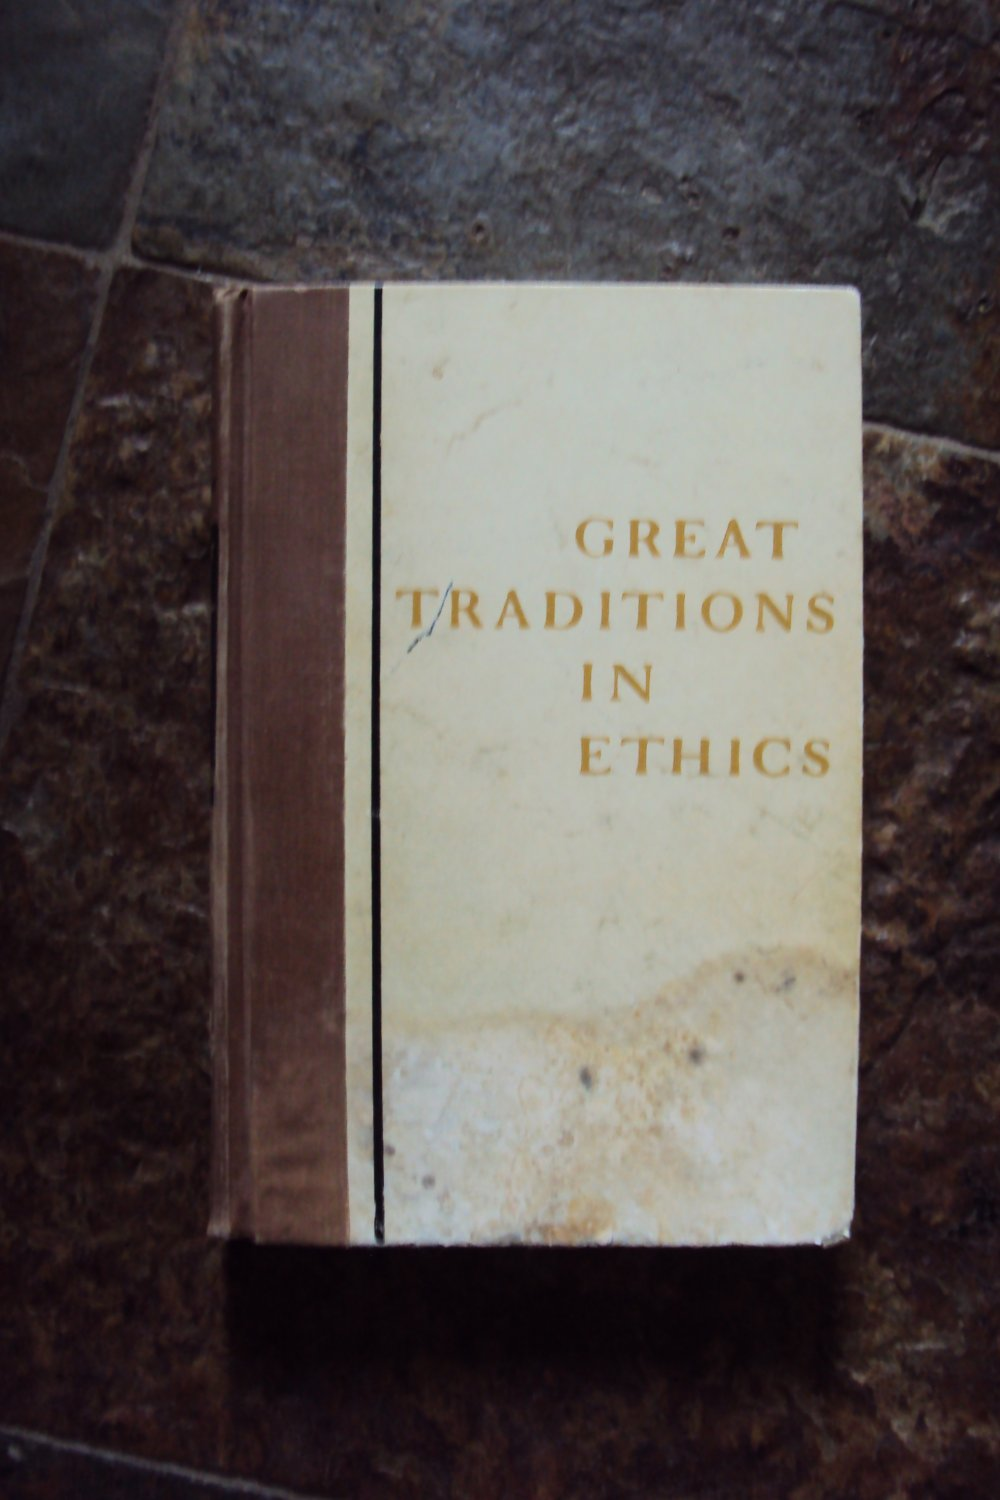 Great Traditions in Ethics- American Book Company, 1953